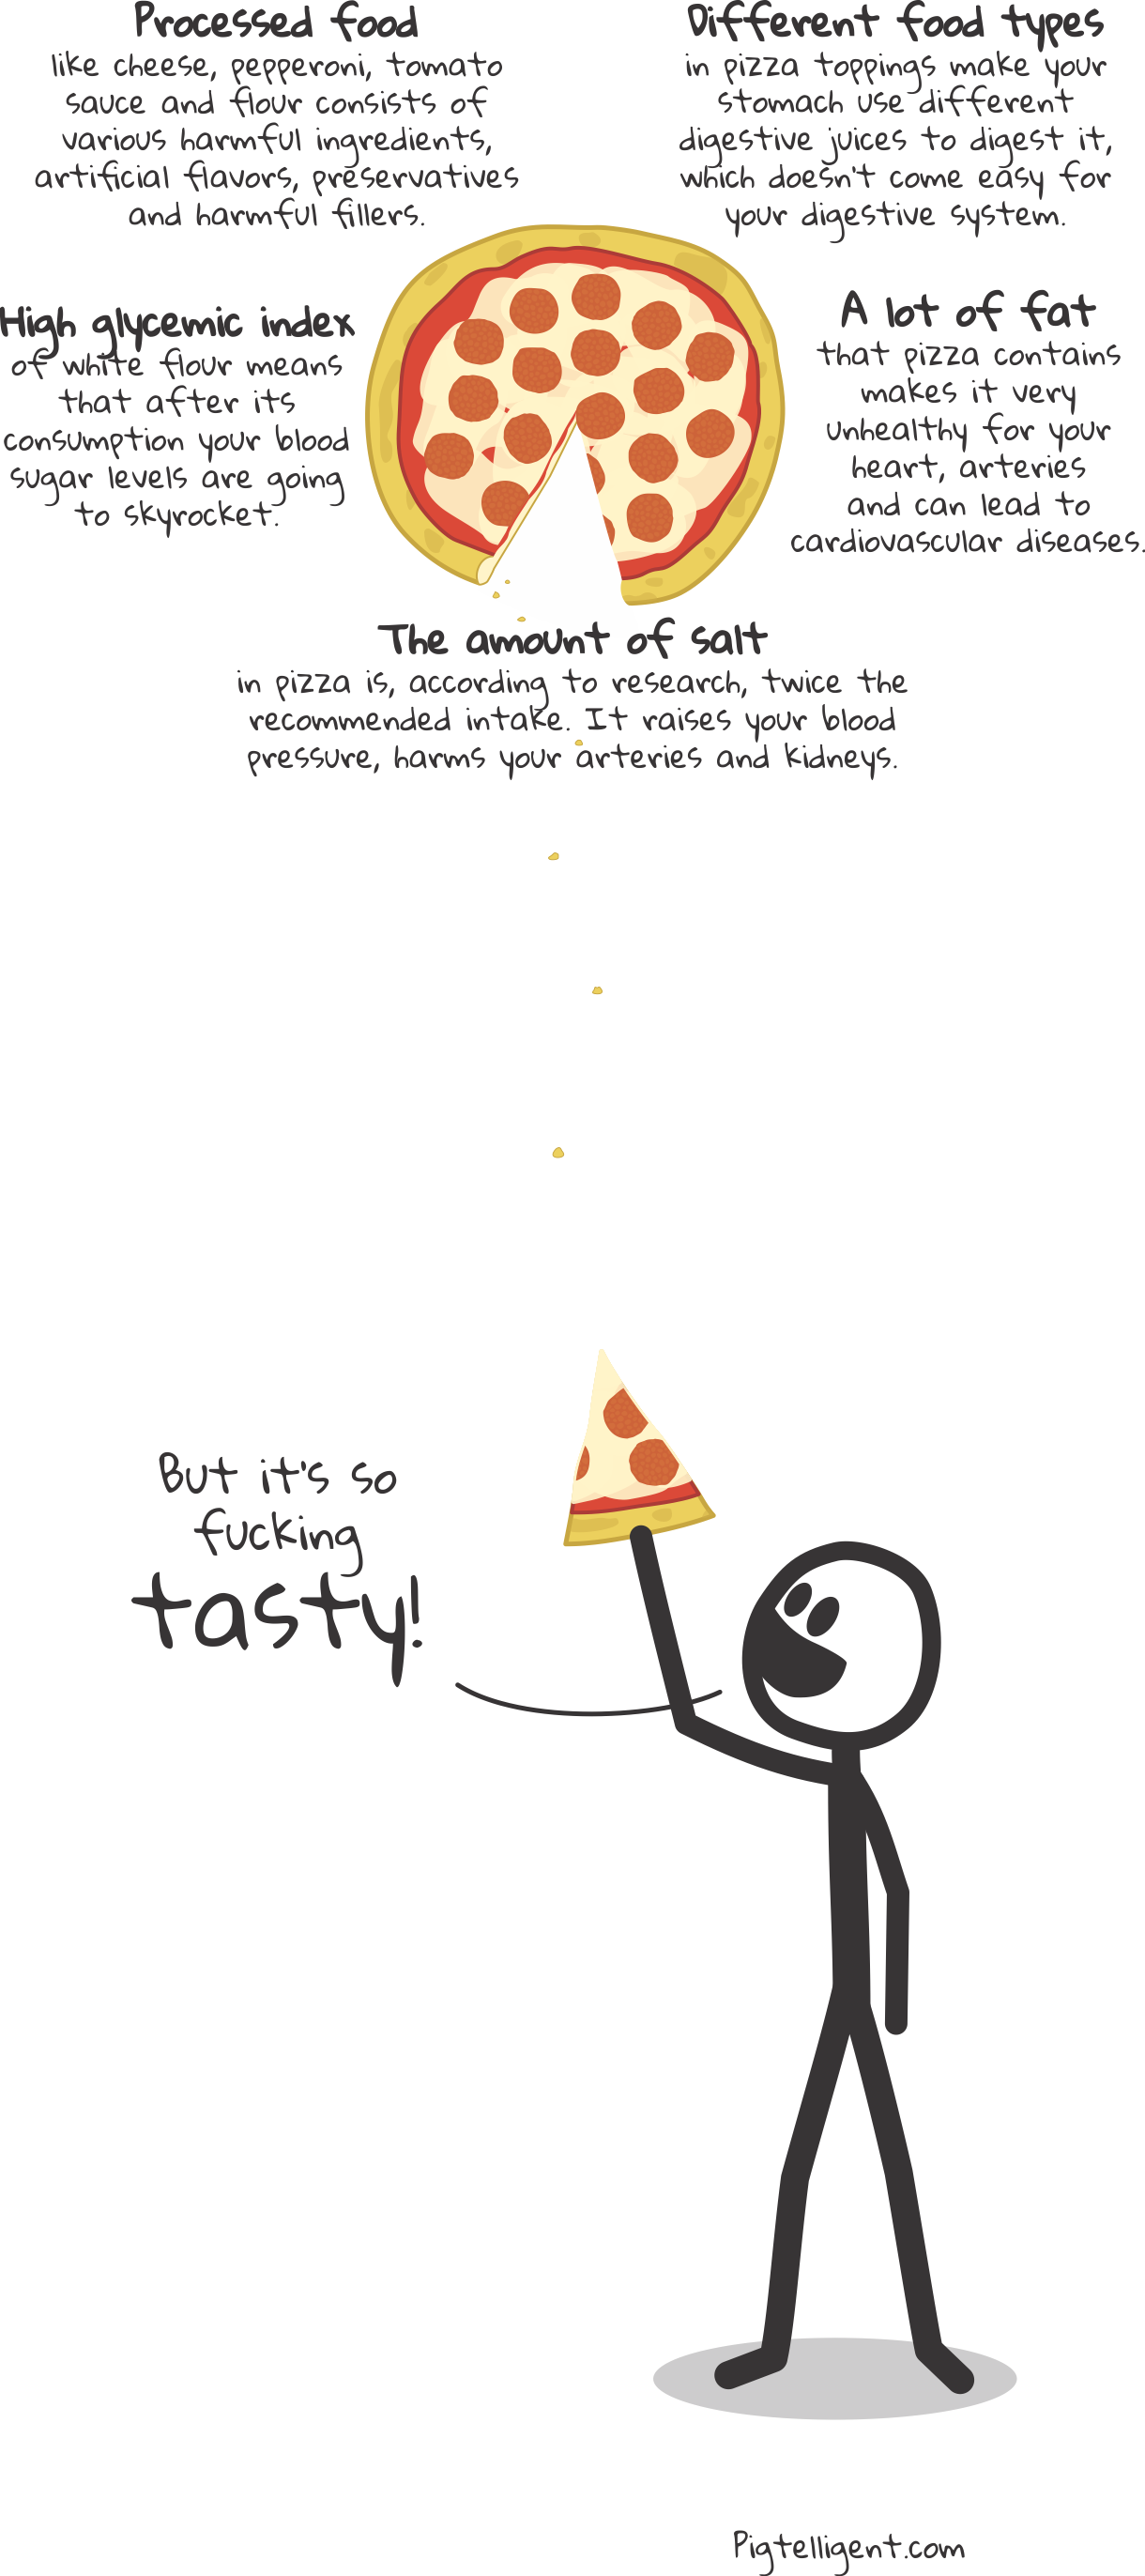 This is why you shouldn't eat pizza